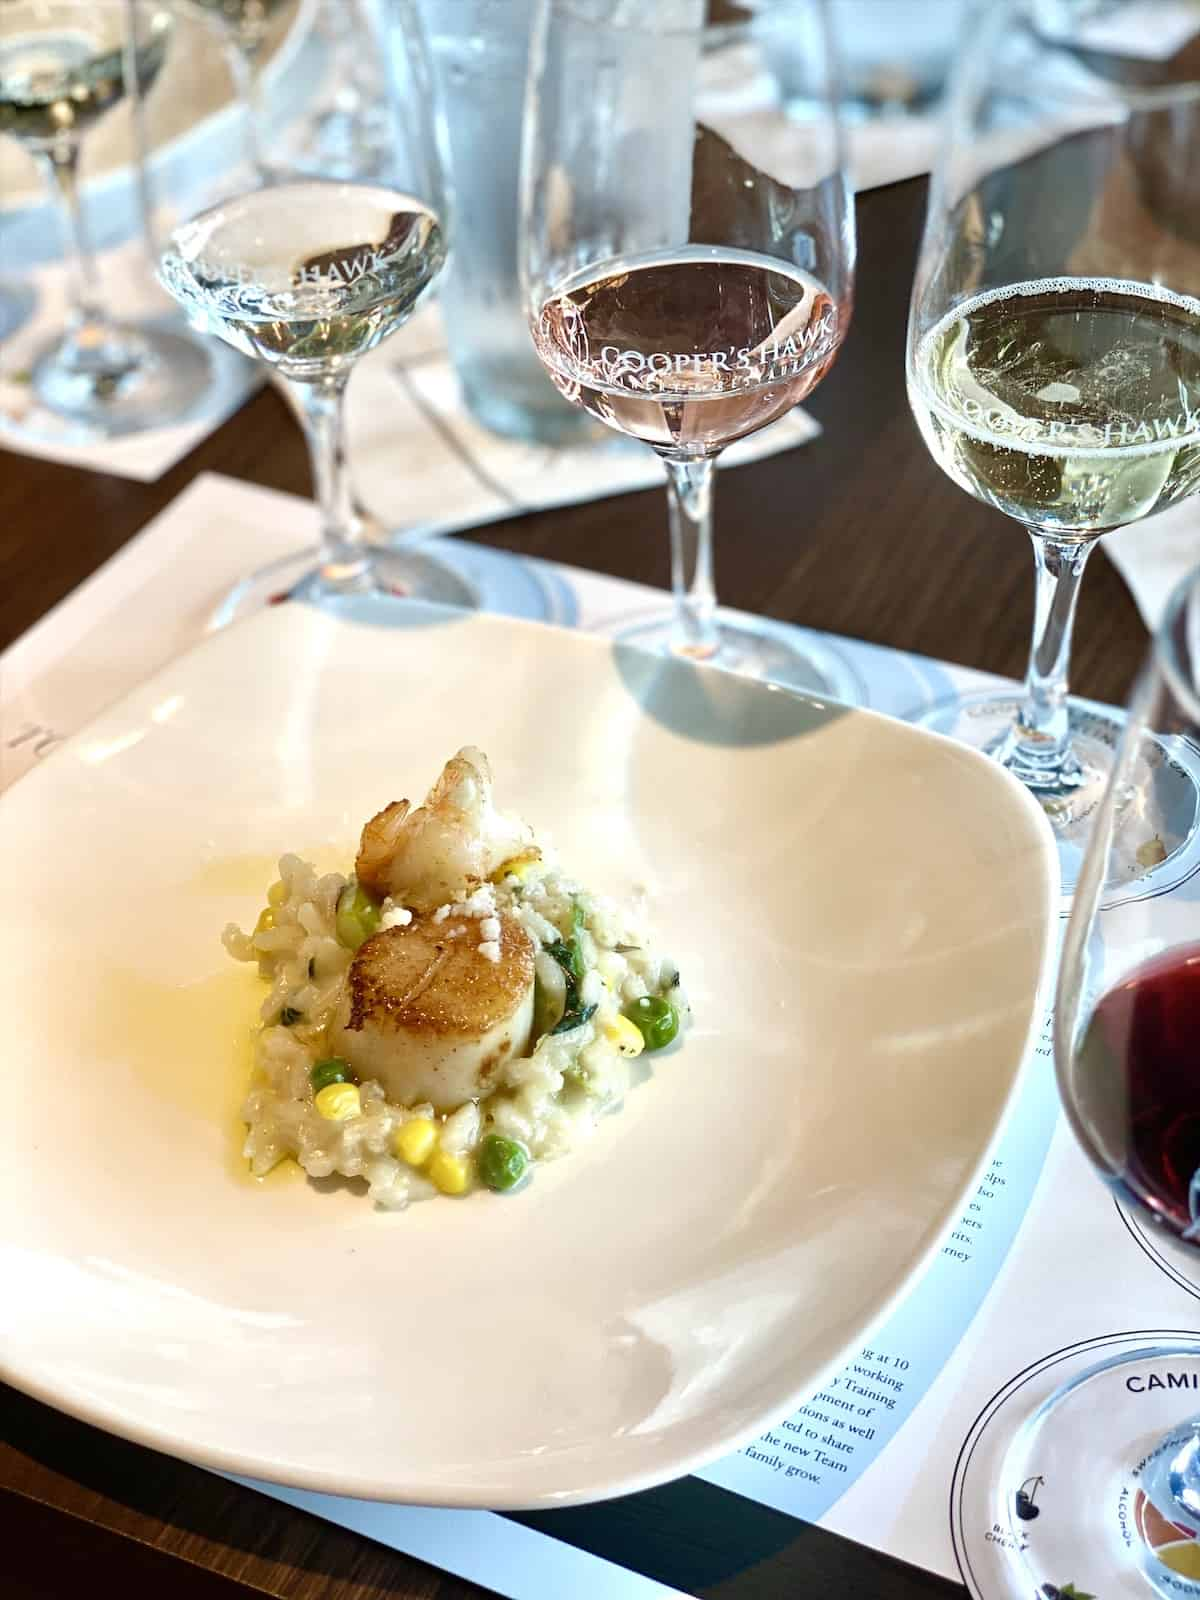 Scallops and risotto with wine glasses in background.